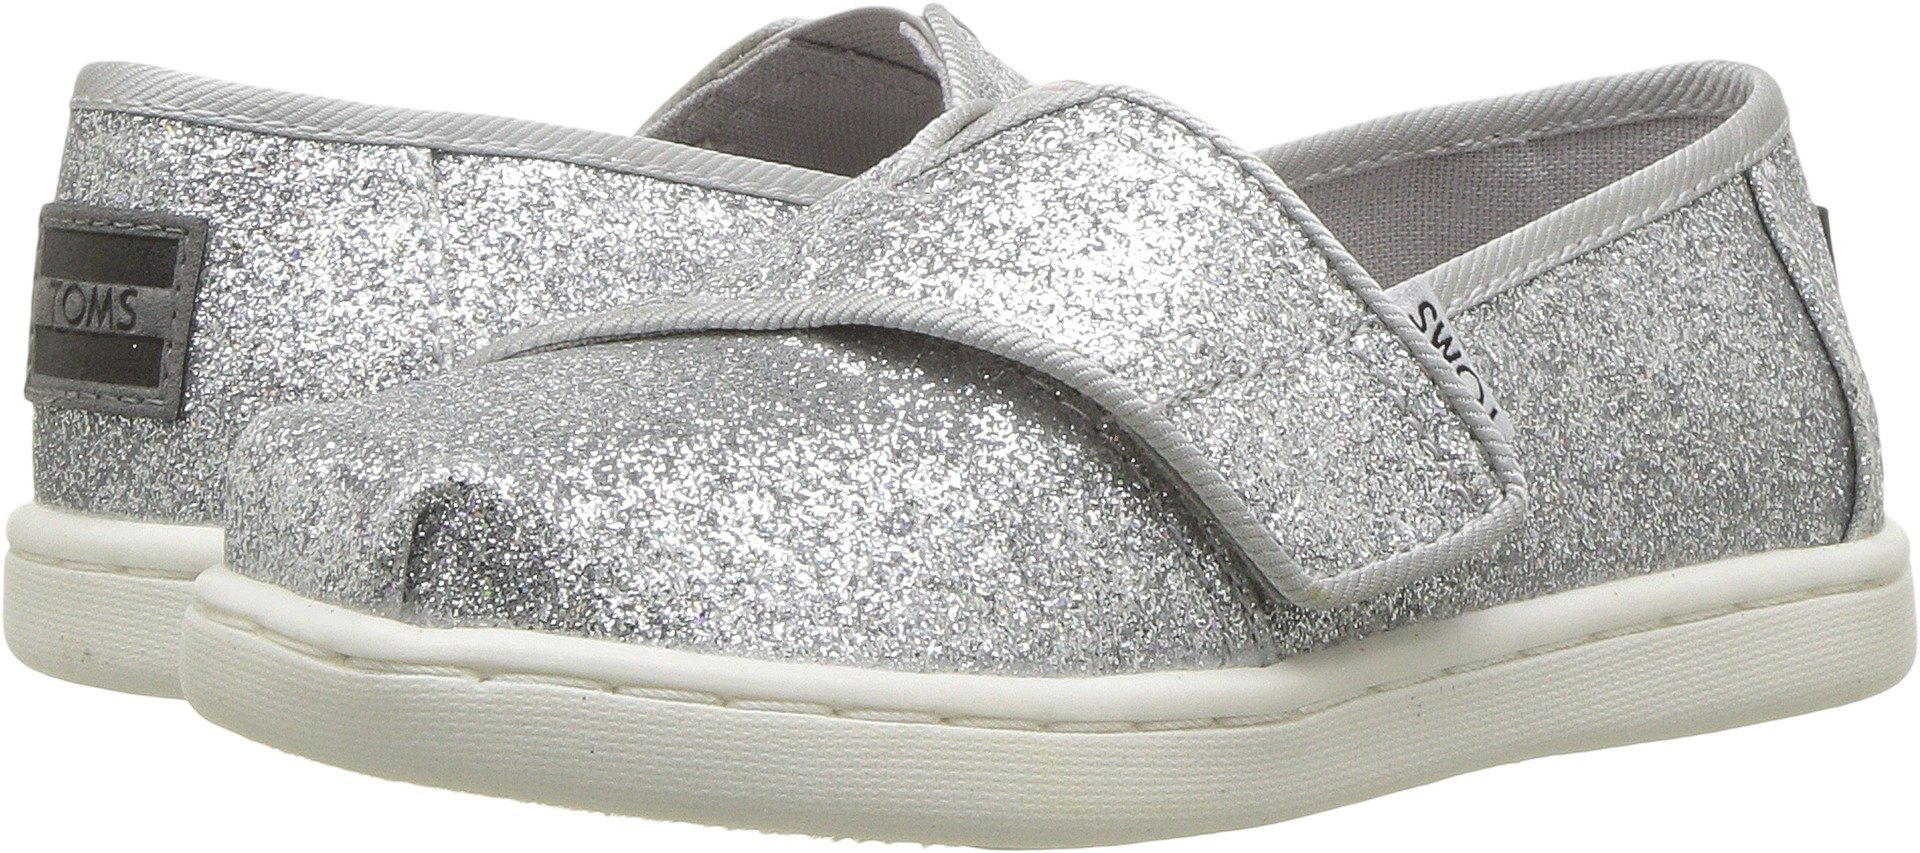 TOMS Kids Baby Girl's Alpargata (Infant/Toddler/Little Kid) Silver Iridescent Glimmer 10 M US Toddler